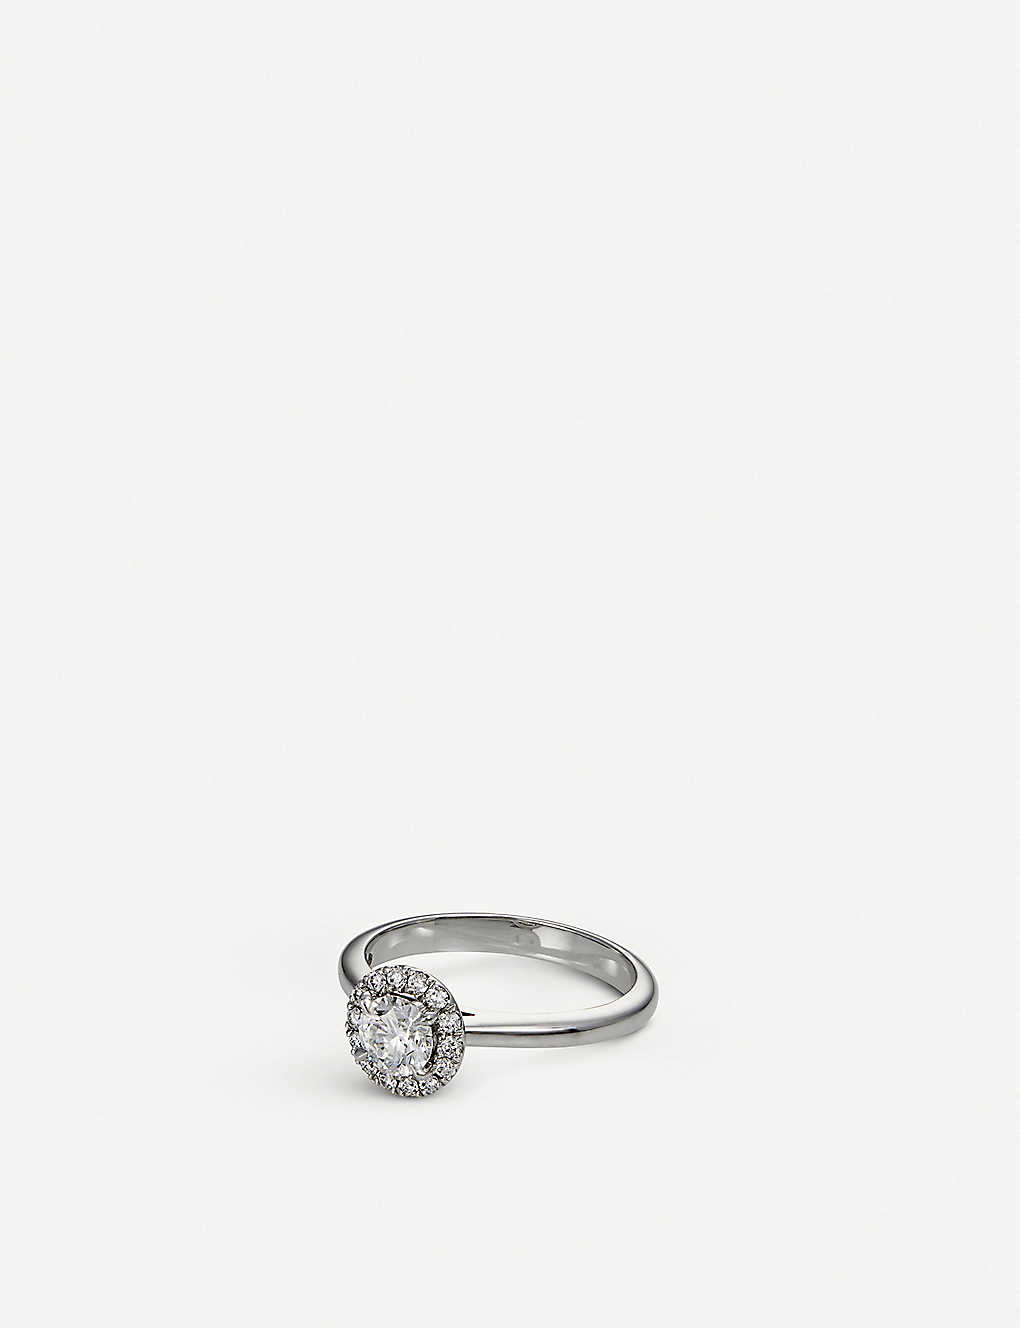 c8a2416f53643 Joy 18ct white gold and diamond ring